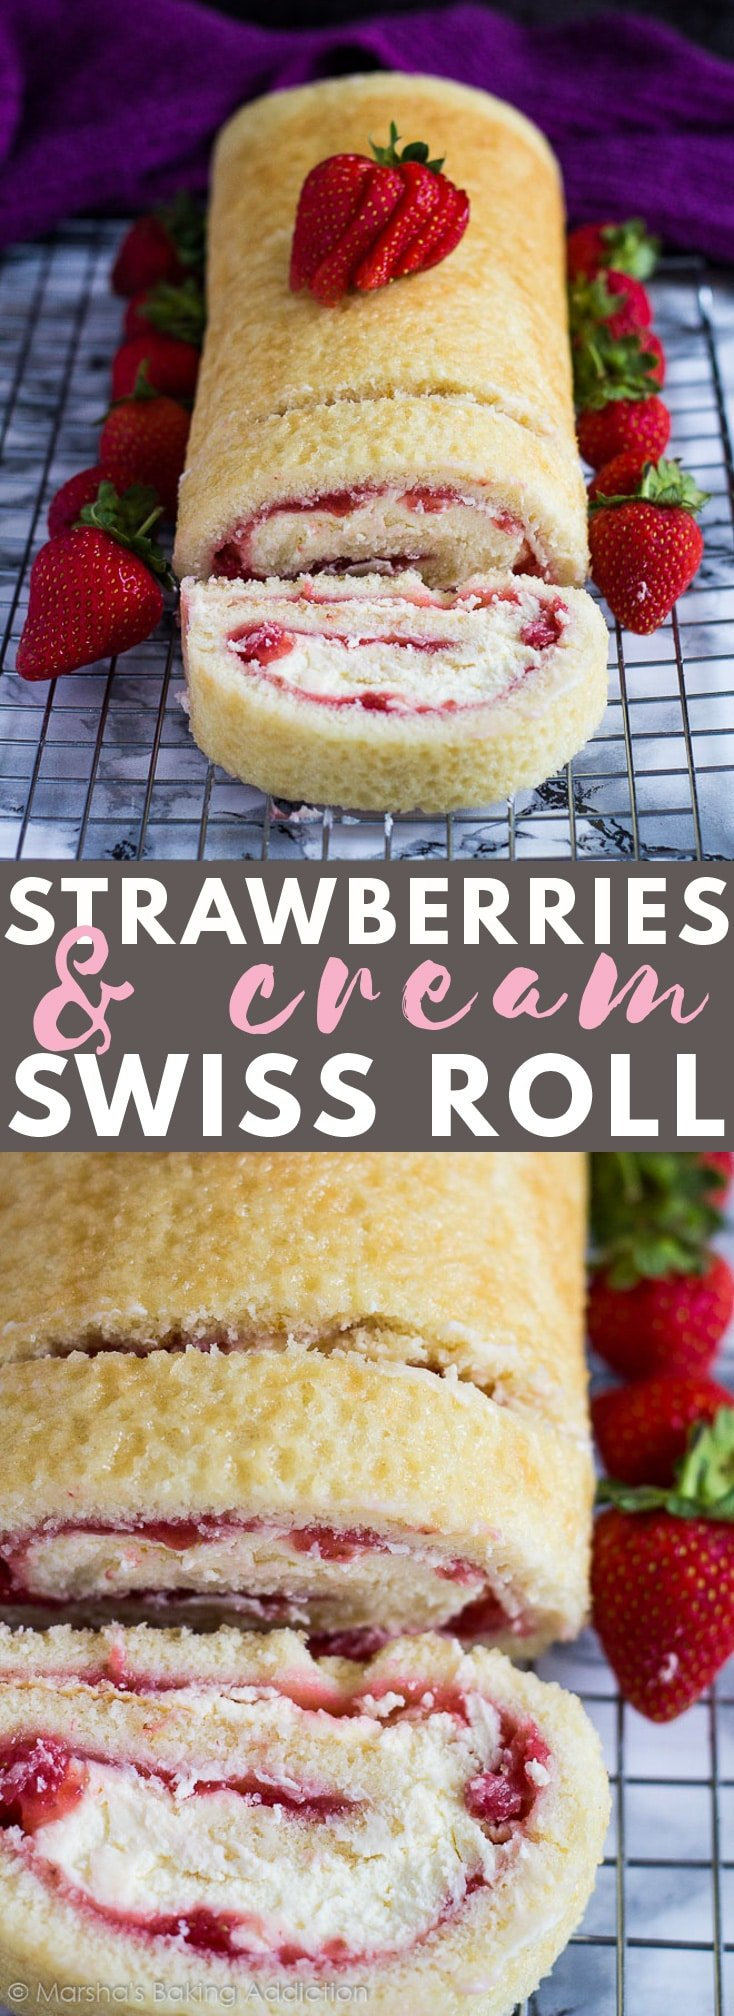 Strawberries and Cream Swiss Roll - Deliciously moist and fluffy vanilla cake filled with a layer of fresh strawberry sauce, and a layer of homemade whipped cream. The perfect summer dessert! #strawberriesandcream #swissroll #swissrollrecipes #cakerecipes